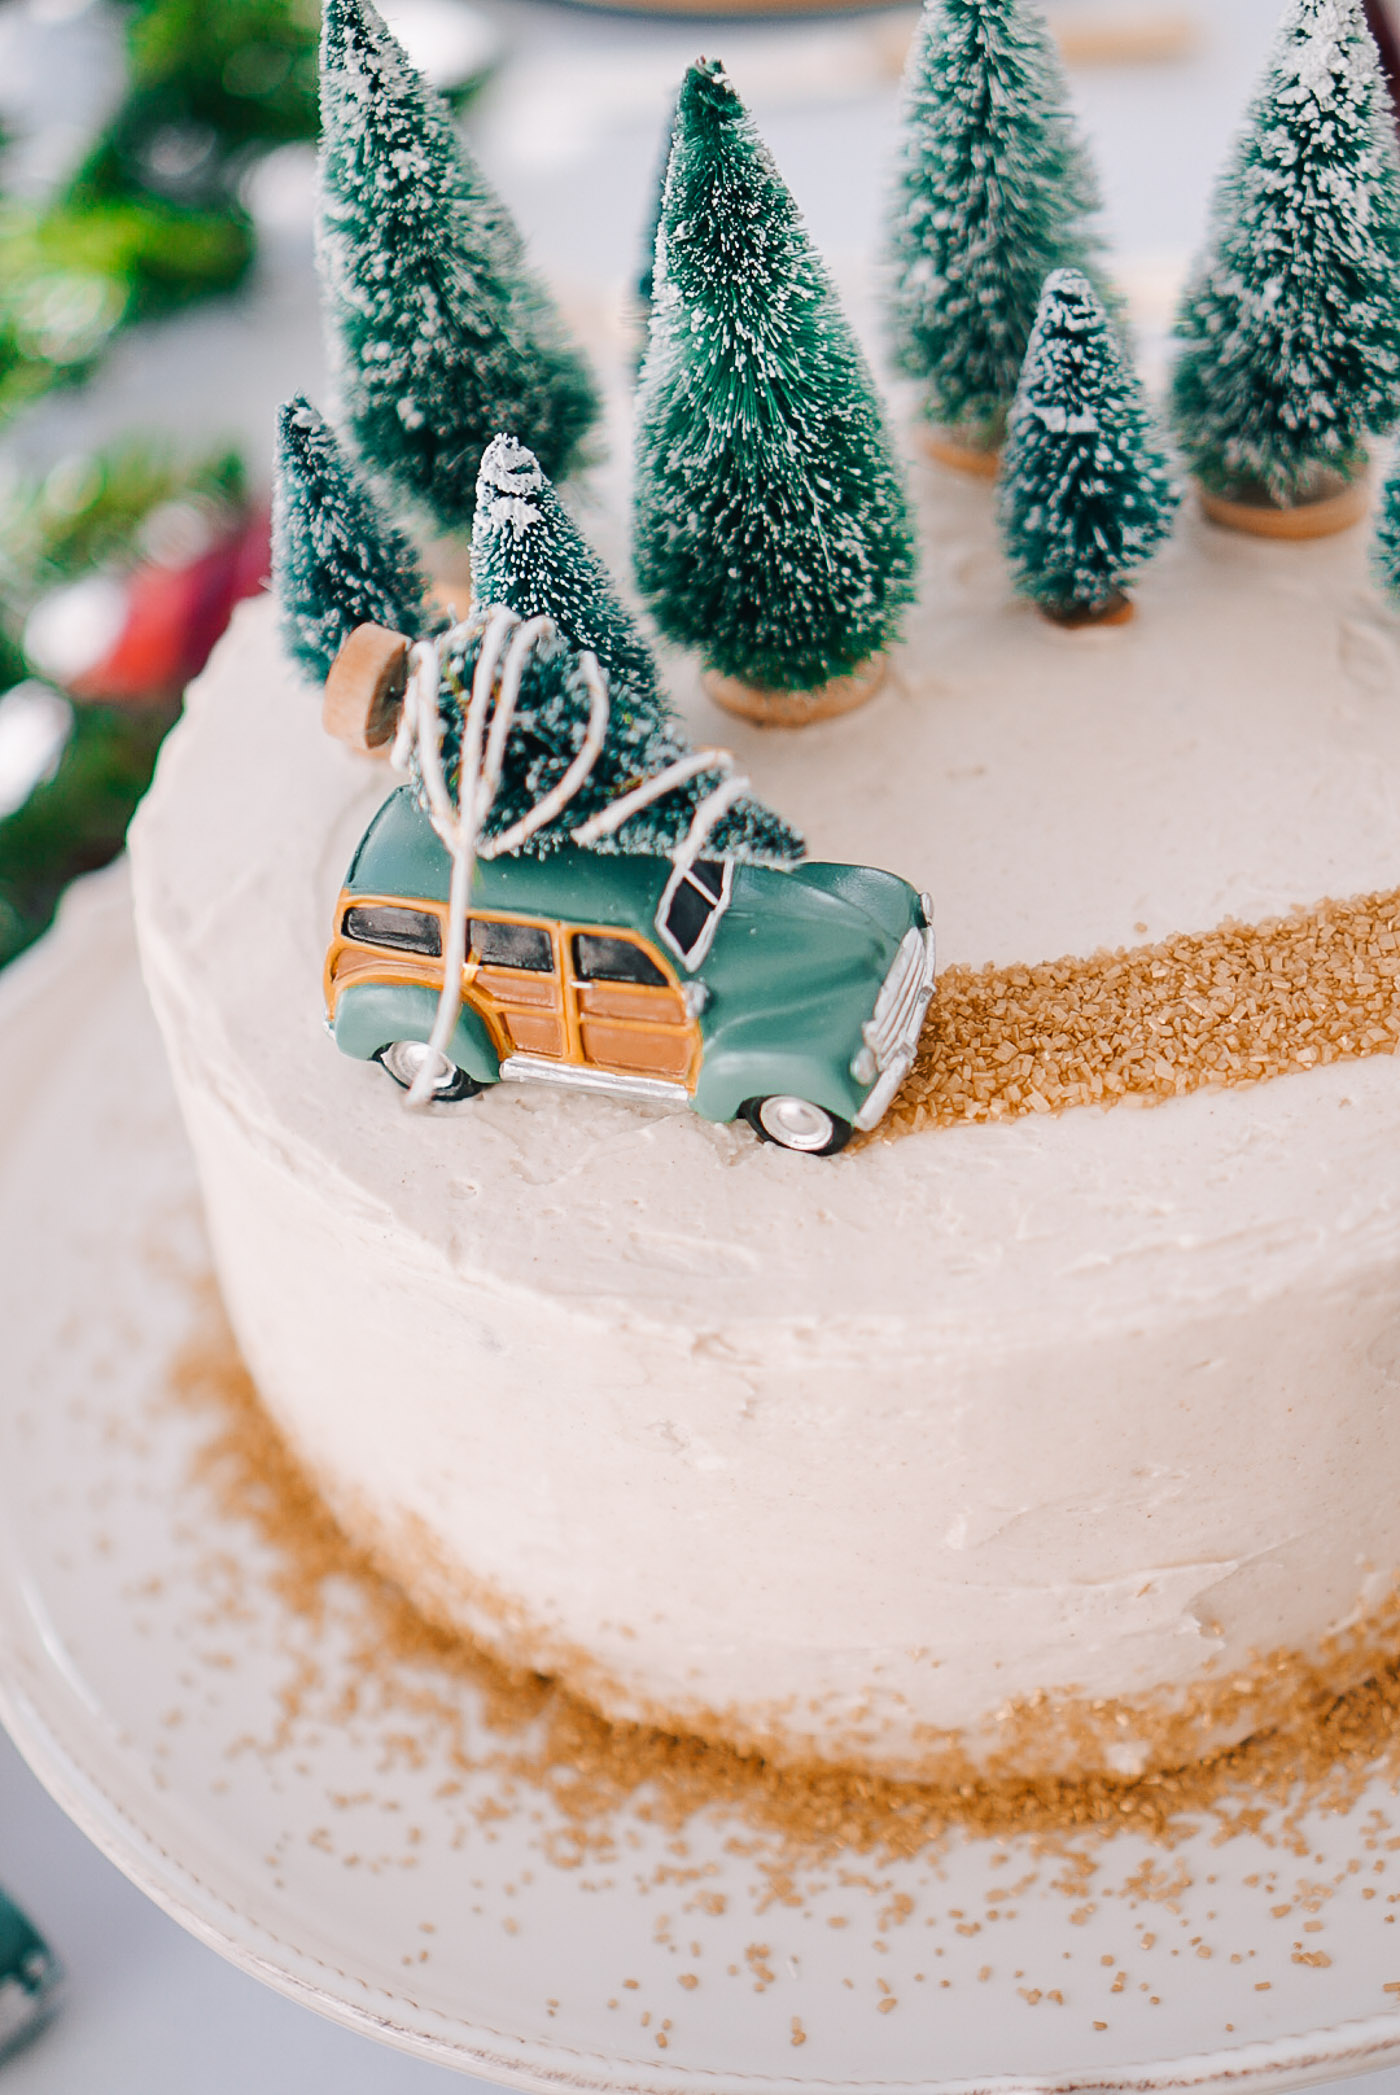 Gingerbread cake with buttercream frosting, Christmas trees, and a station wagon on white cake plate